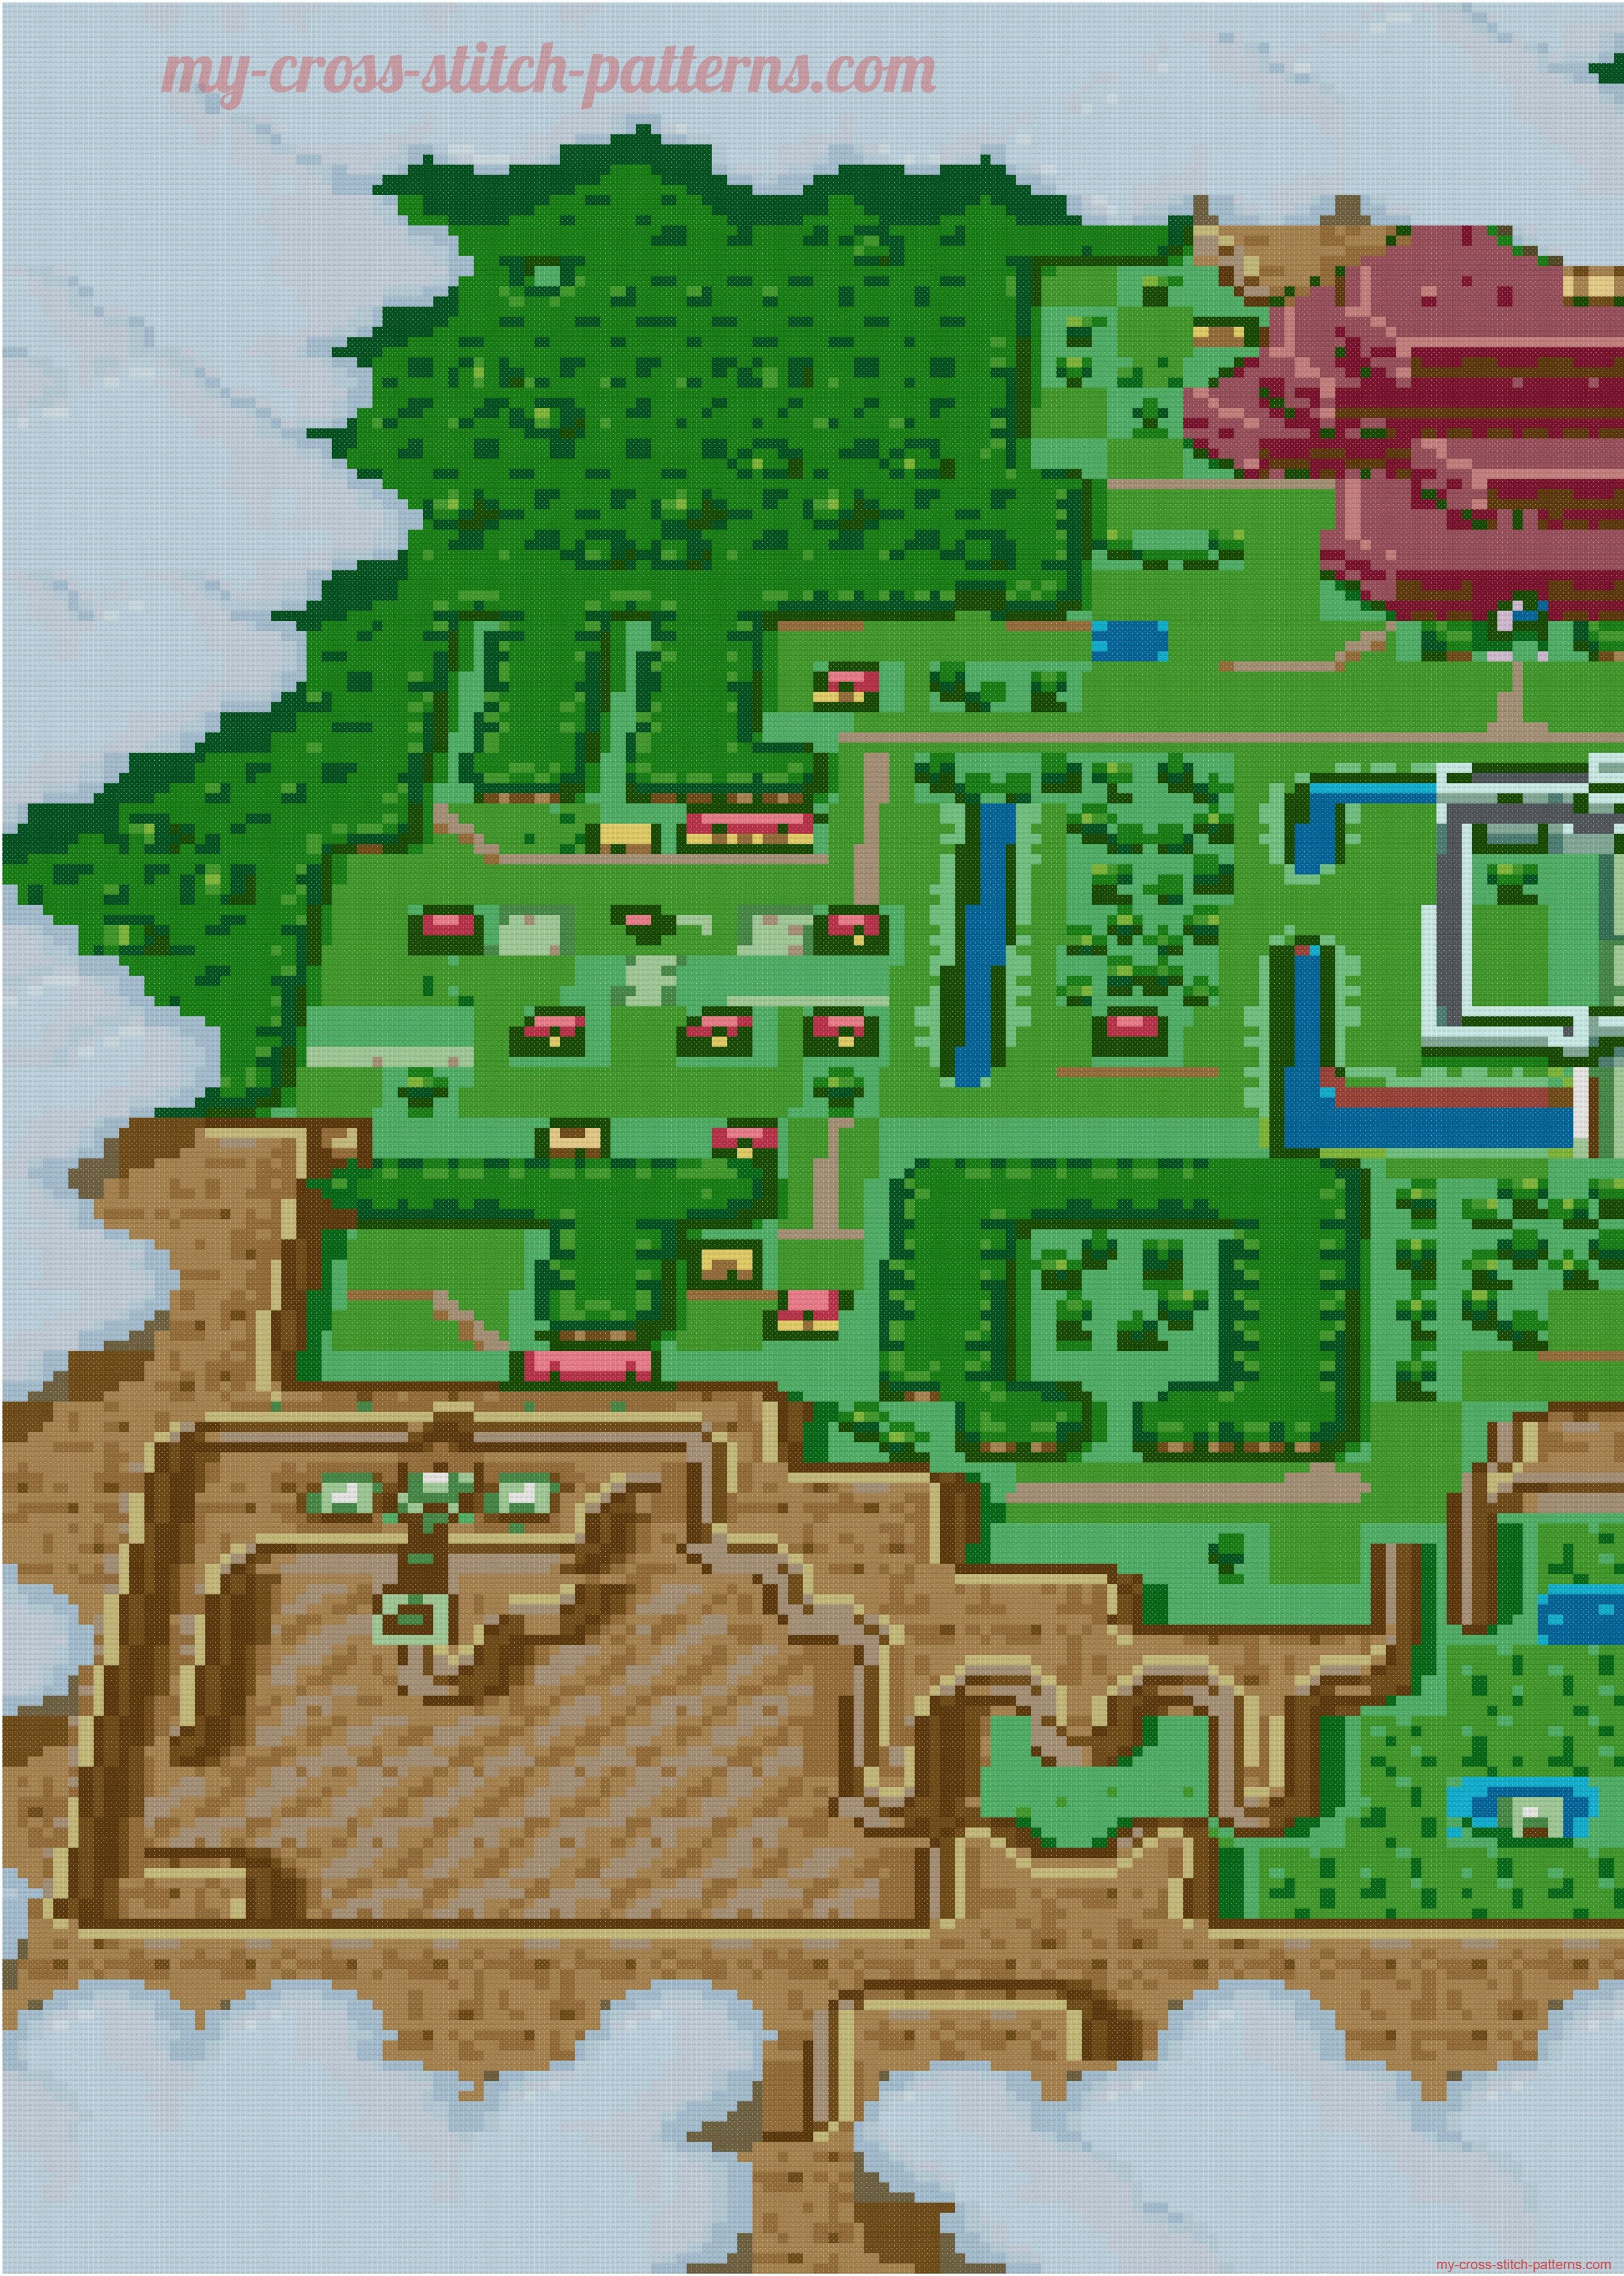 The Legend Of Zelda A Link To The Past Map Cross Stitch Pattern 3 2855x4000 5819562 Cross Stitch Stitch Patterns Cross Stitch Patterns